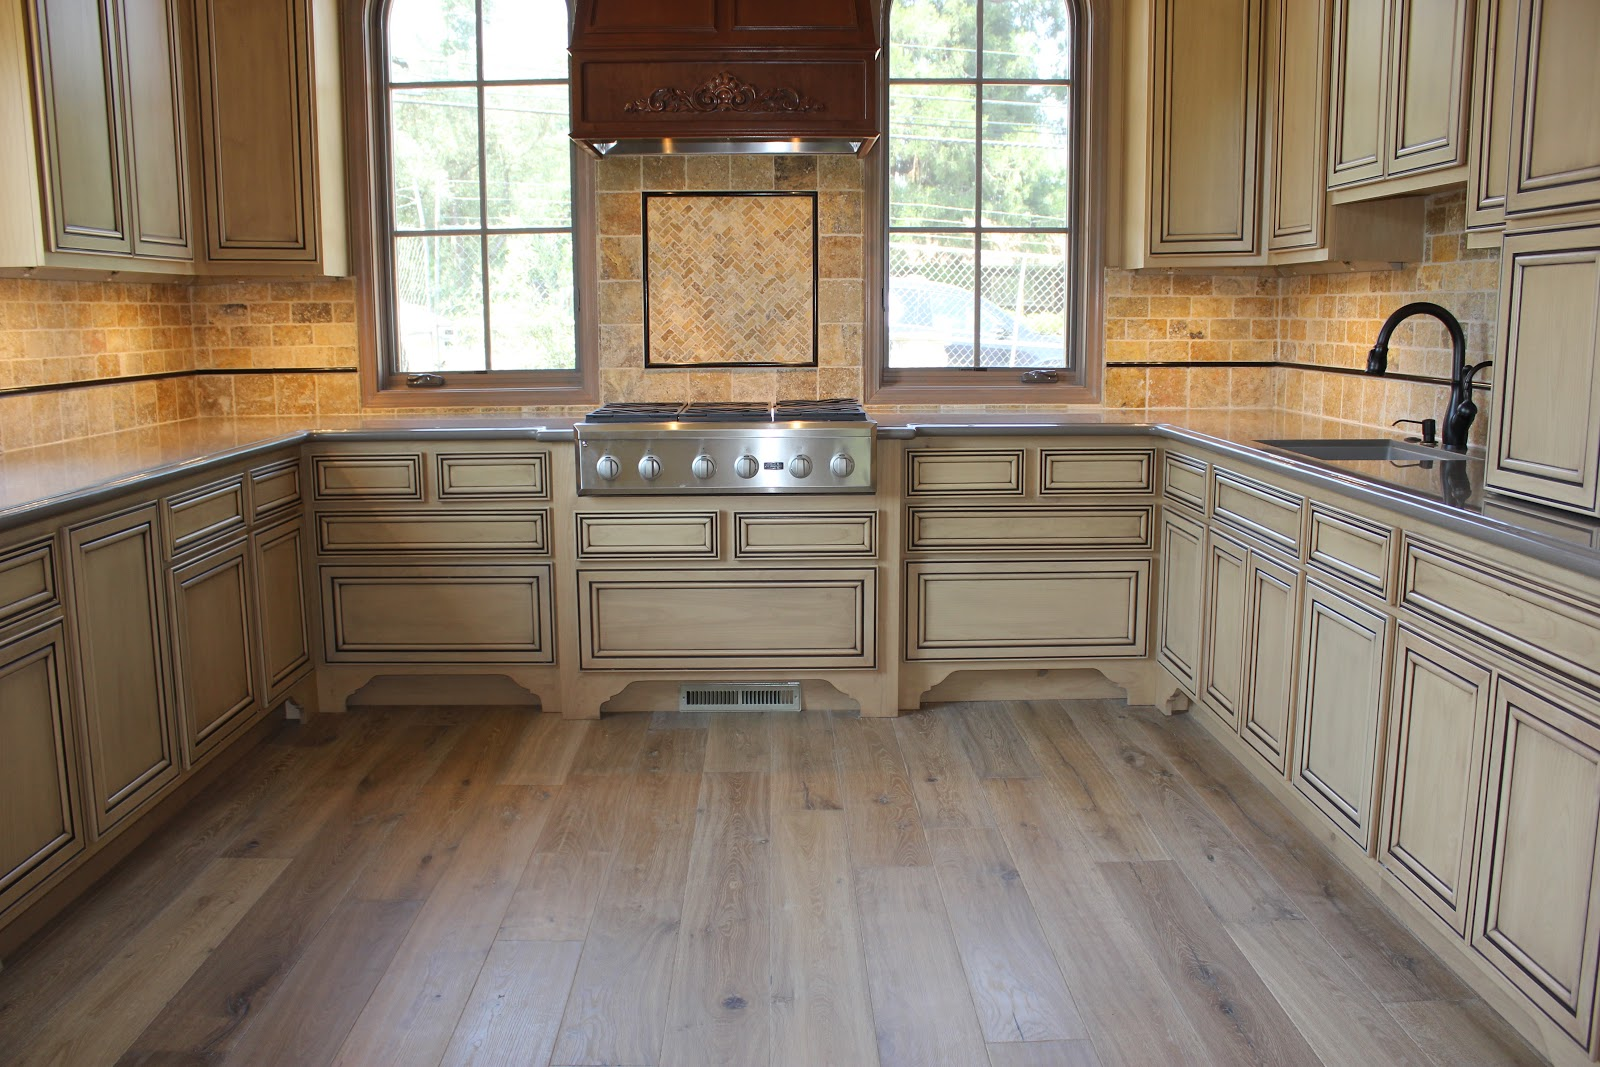 Simas floor and design company hardwood flooring by royal oak for Floors tiles for kitchen